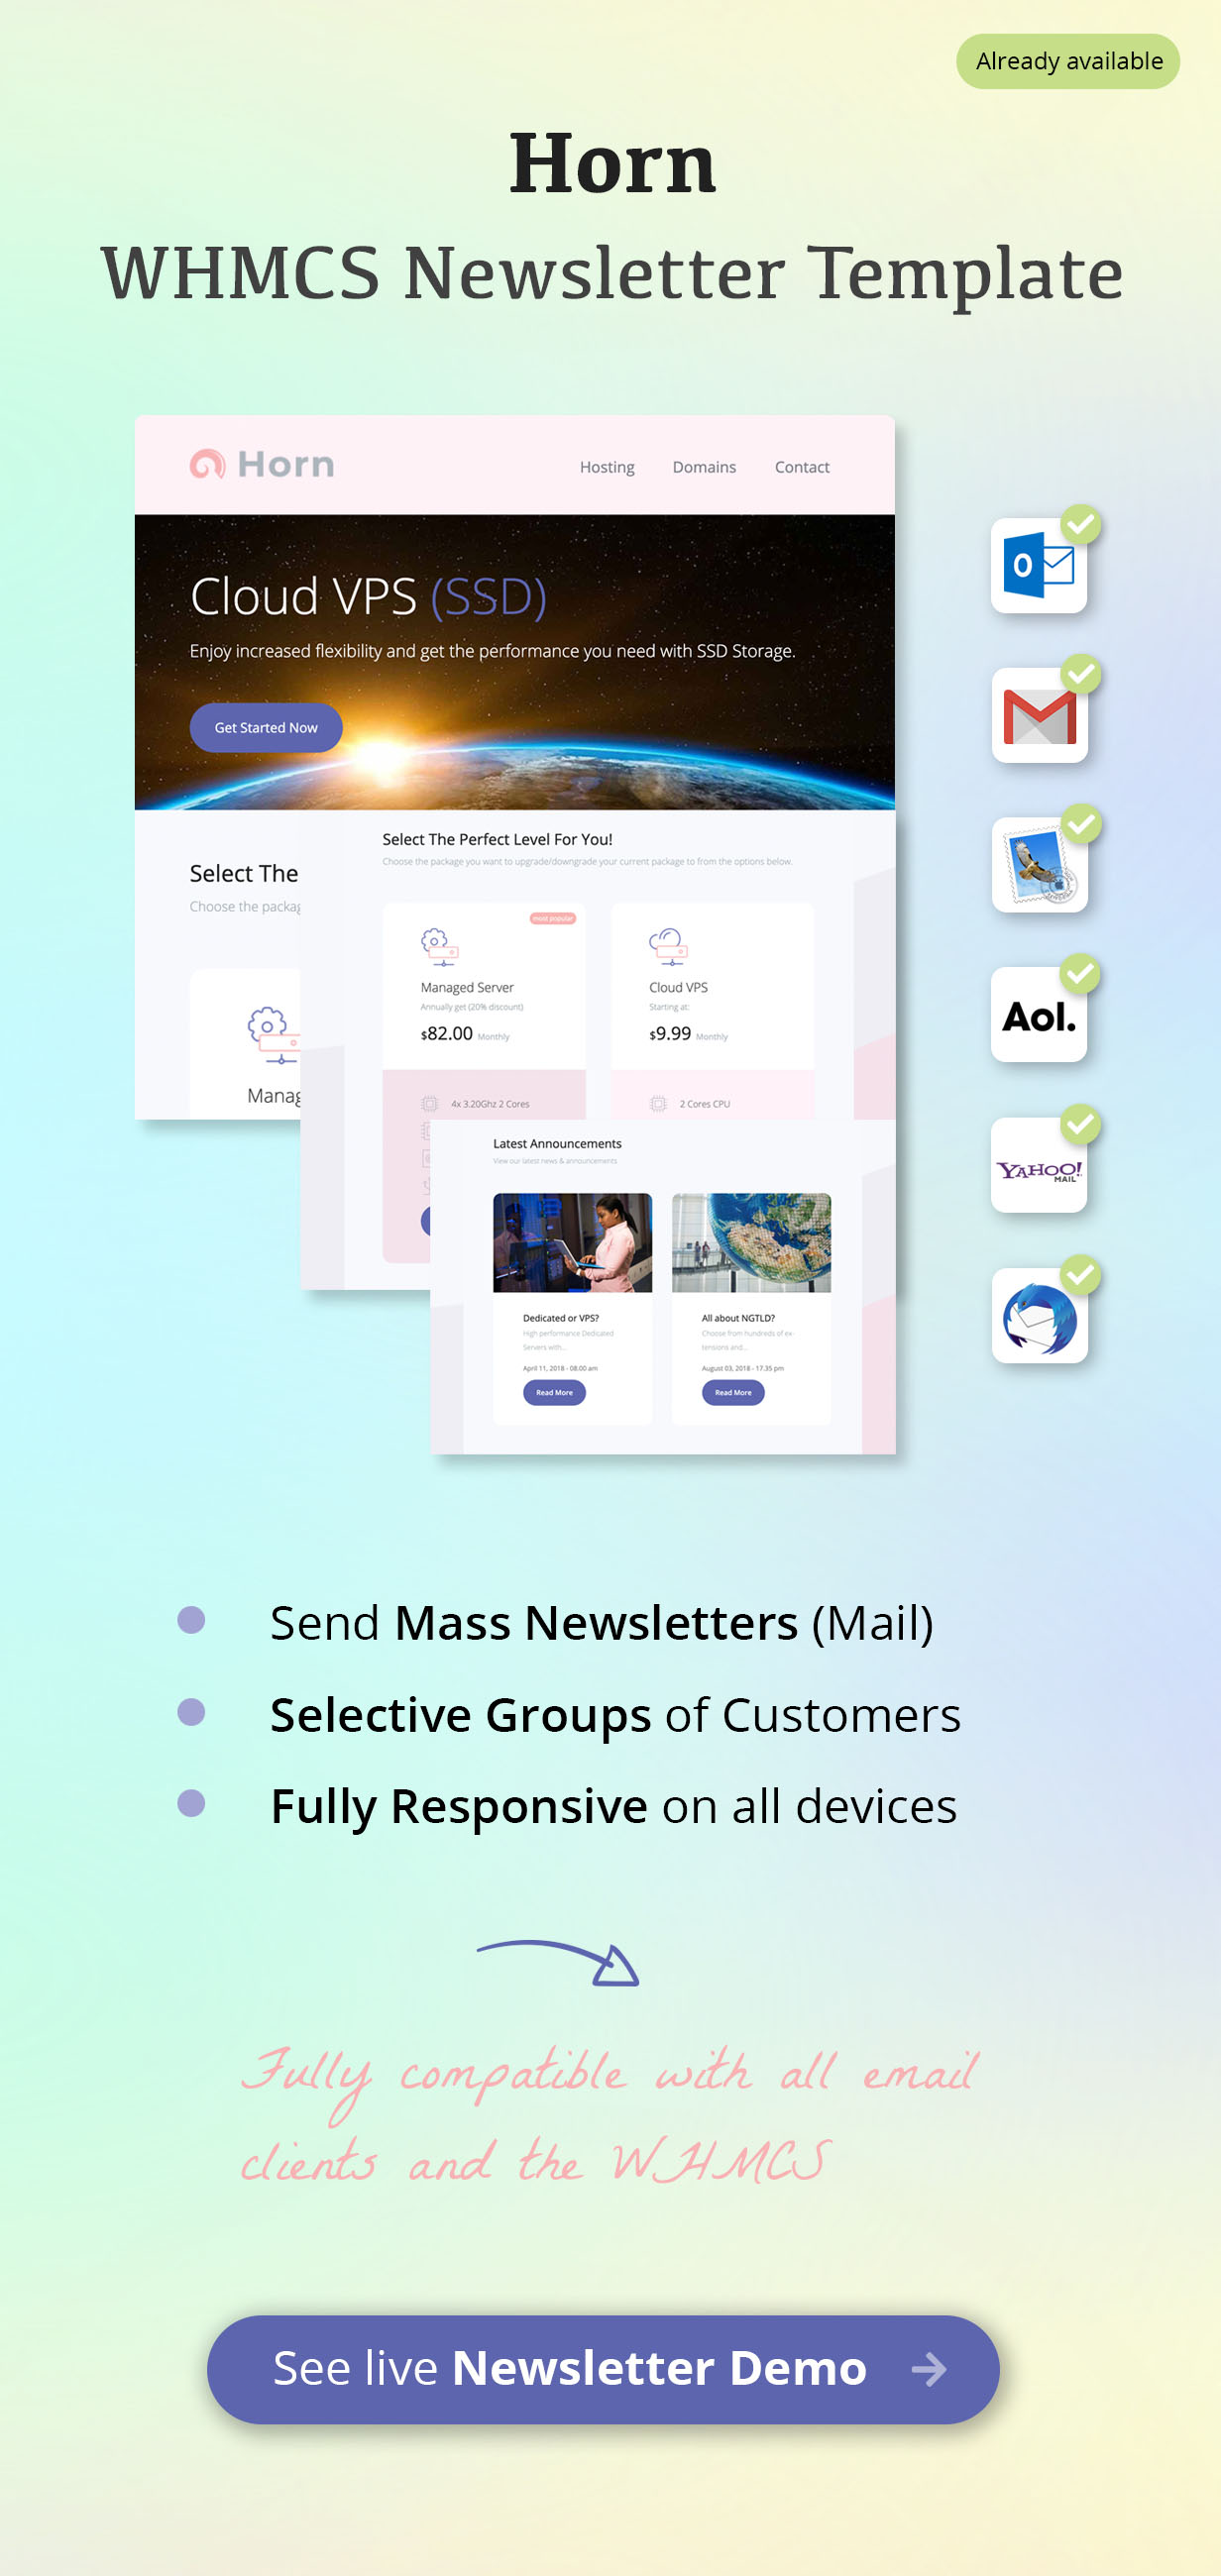 WHMCS Newsletter Template